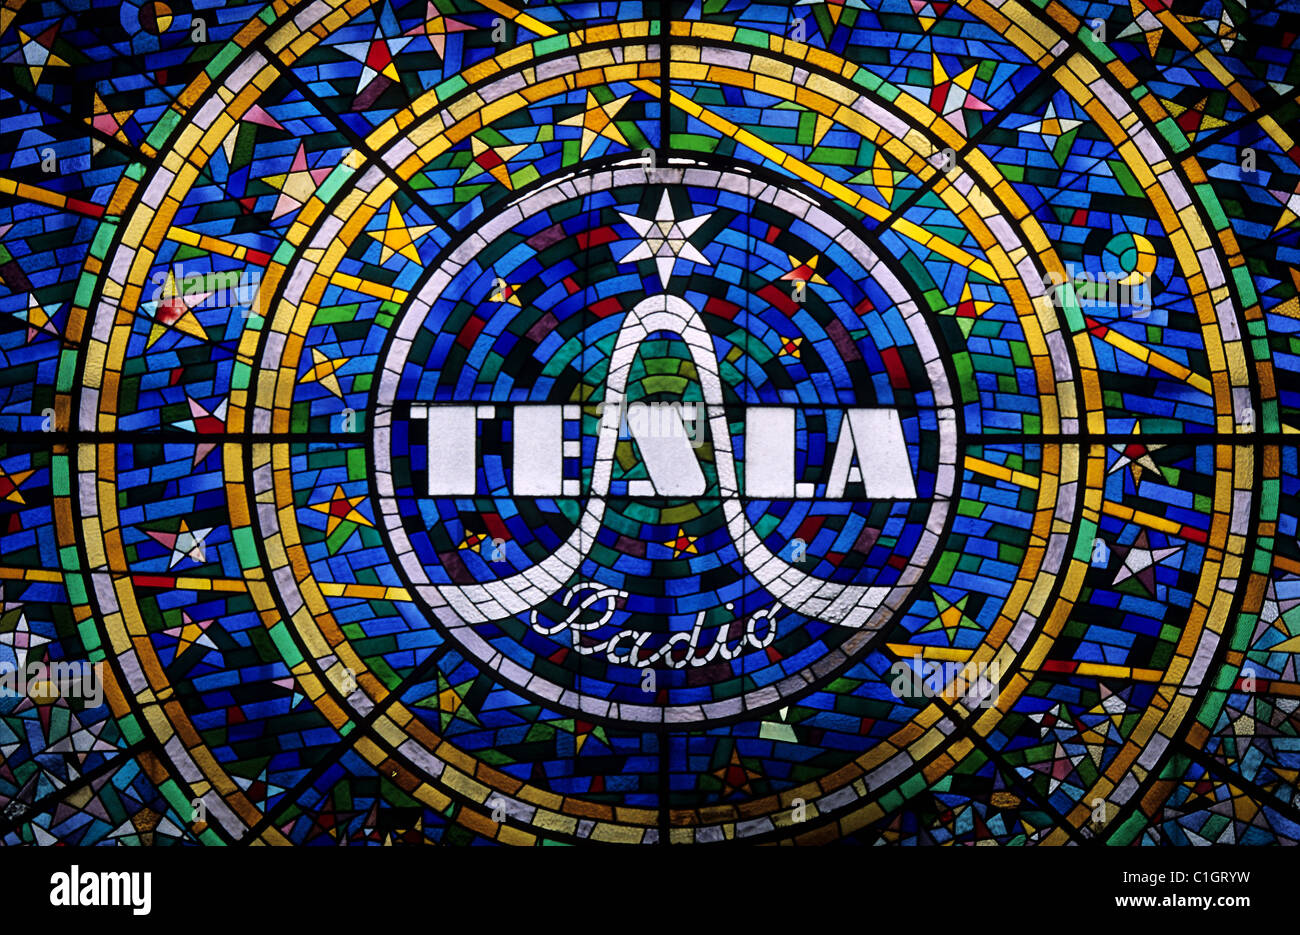 Czech republic prague art nouveau style stained glass with tesla czech republic prague art nouveau style stained glass with tesla radio advertisement buycottarizona Gallery